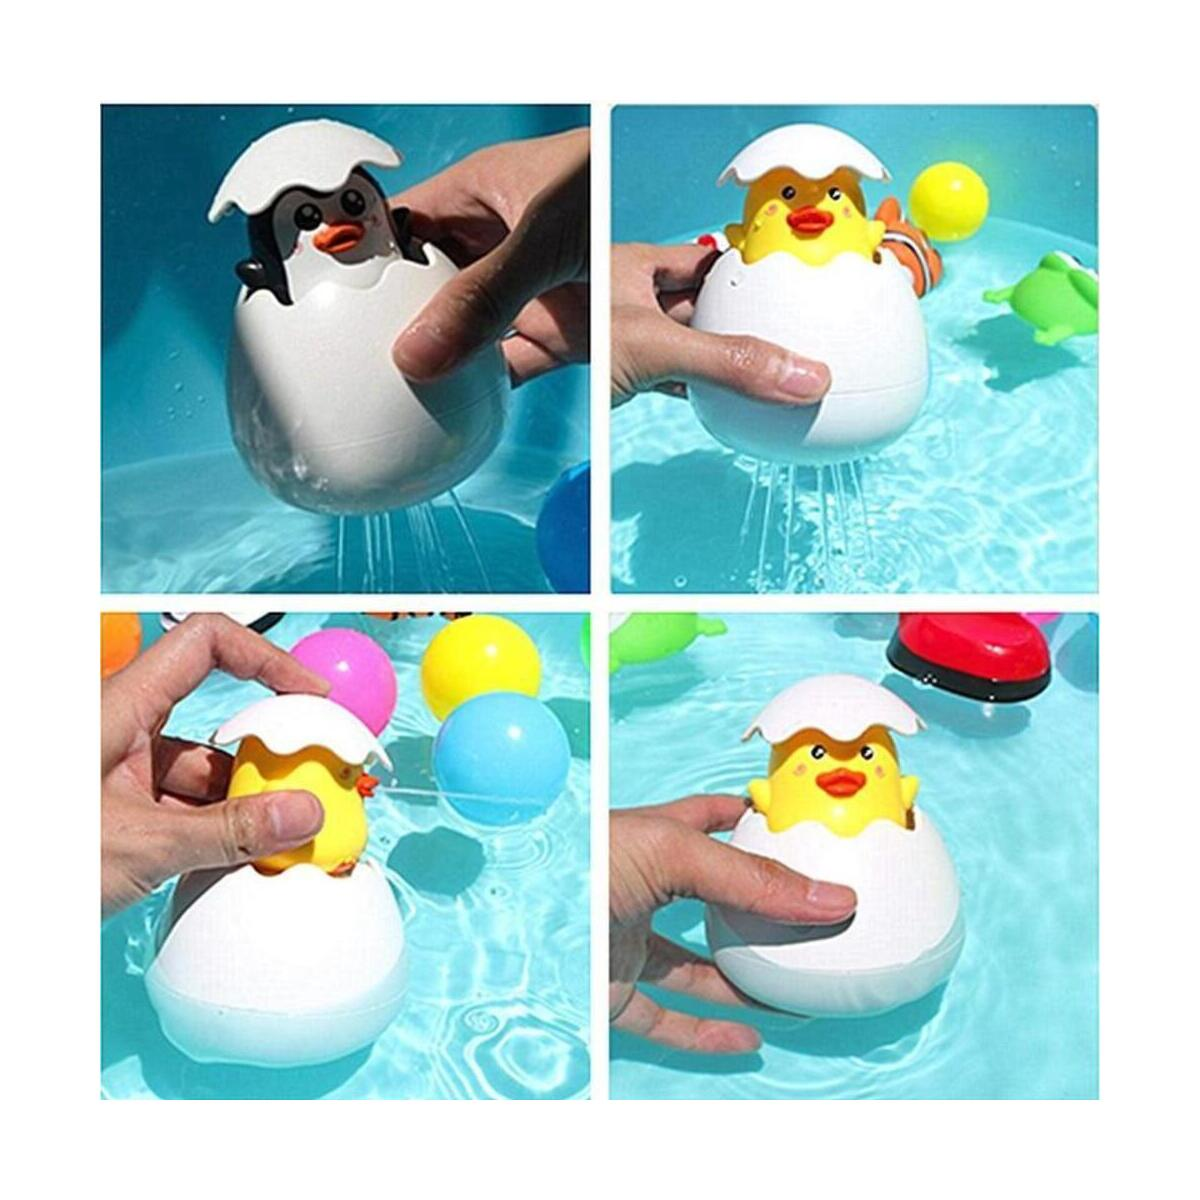 Bath Water Squirting Toy, Fun Water Spray Sprinkle Bathtub Pool Bathroom Hatching Egg Toys